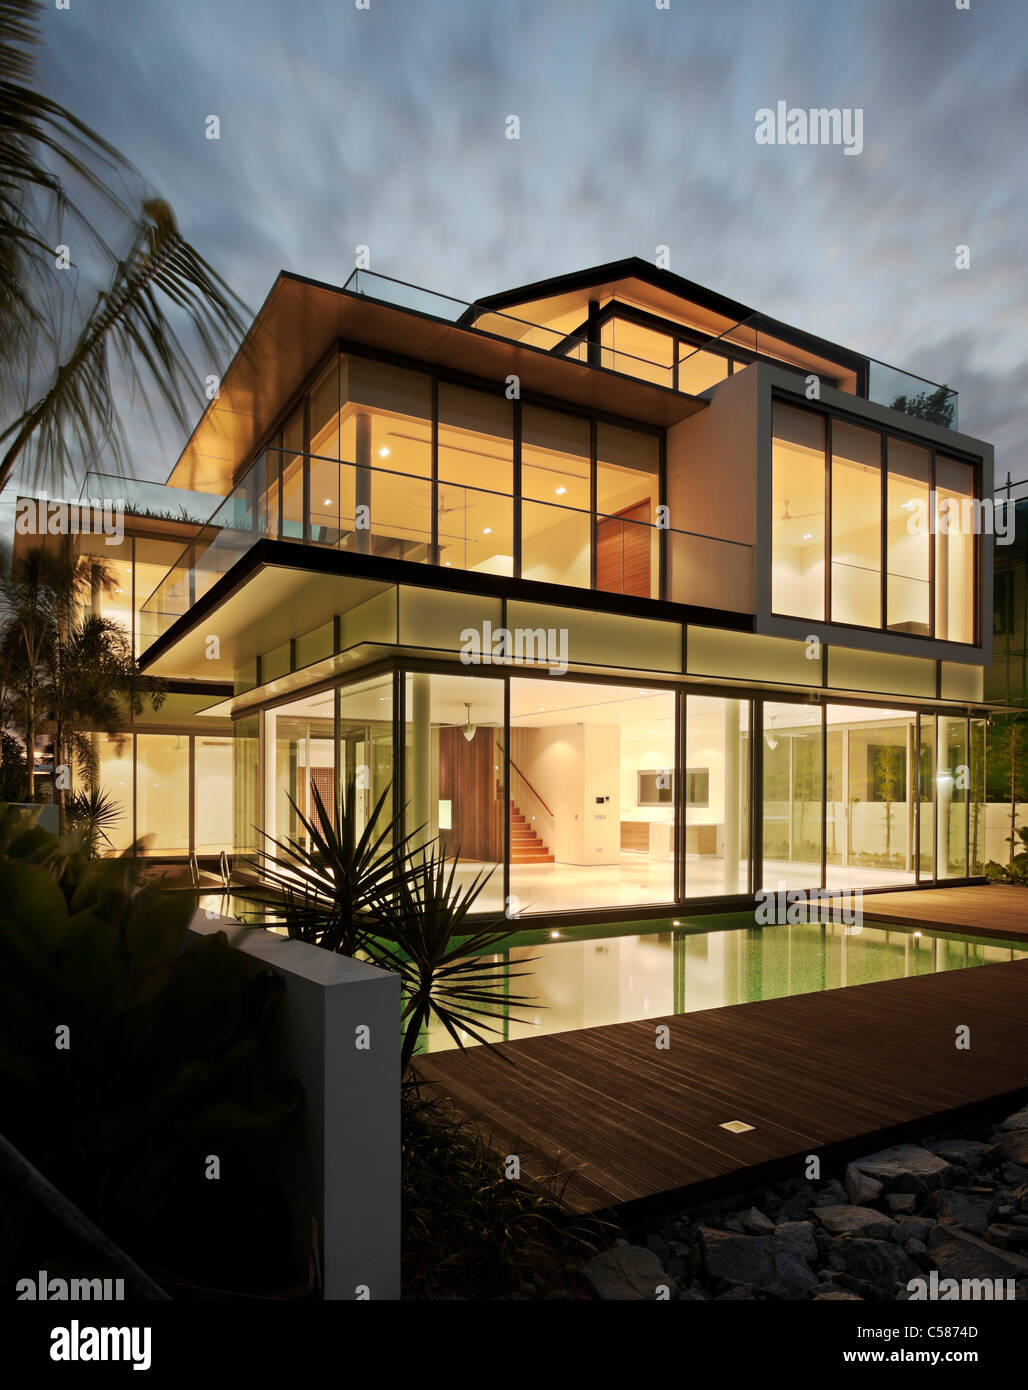 Modern glass house at dusk. - Stock Image